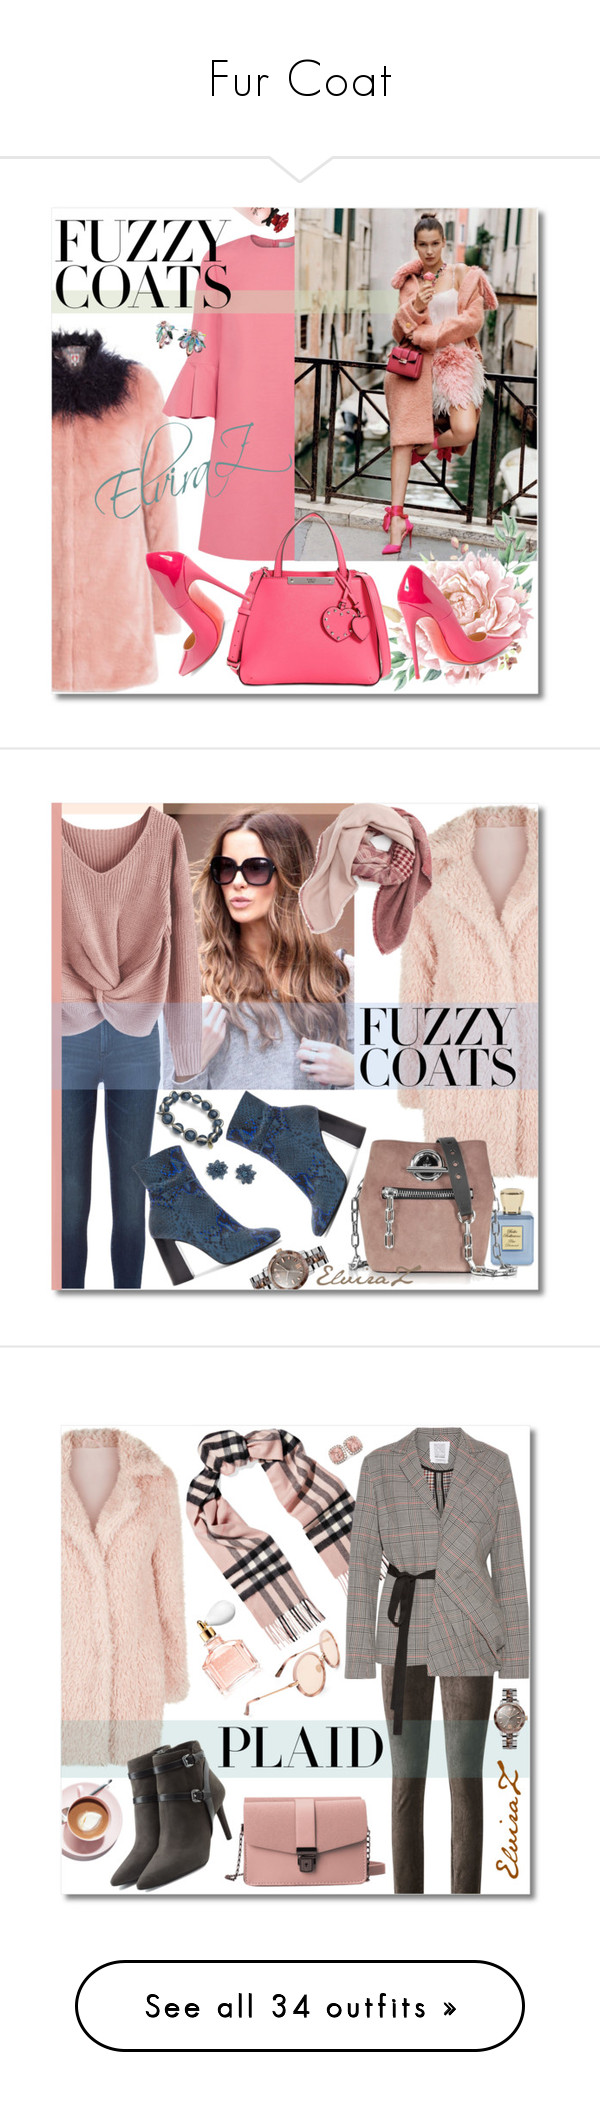 """""""Fur Coat"""" by elza76 ❤ liked on Polyvore featuring Shrimps, Valentino, Dolce&Gabbana, GUESS, Christian Louboutin, Matthew Williamson, Bella Bellissima, Alexander Wang, BP. and Vivienne Westwood"""